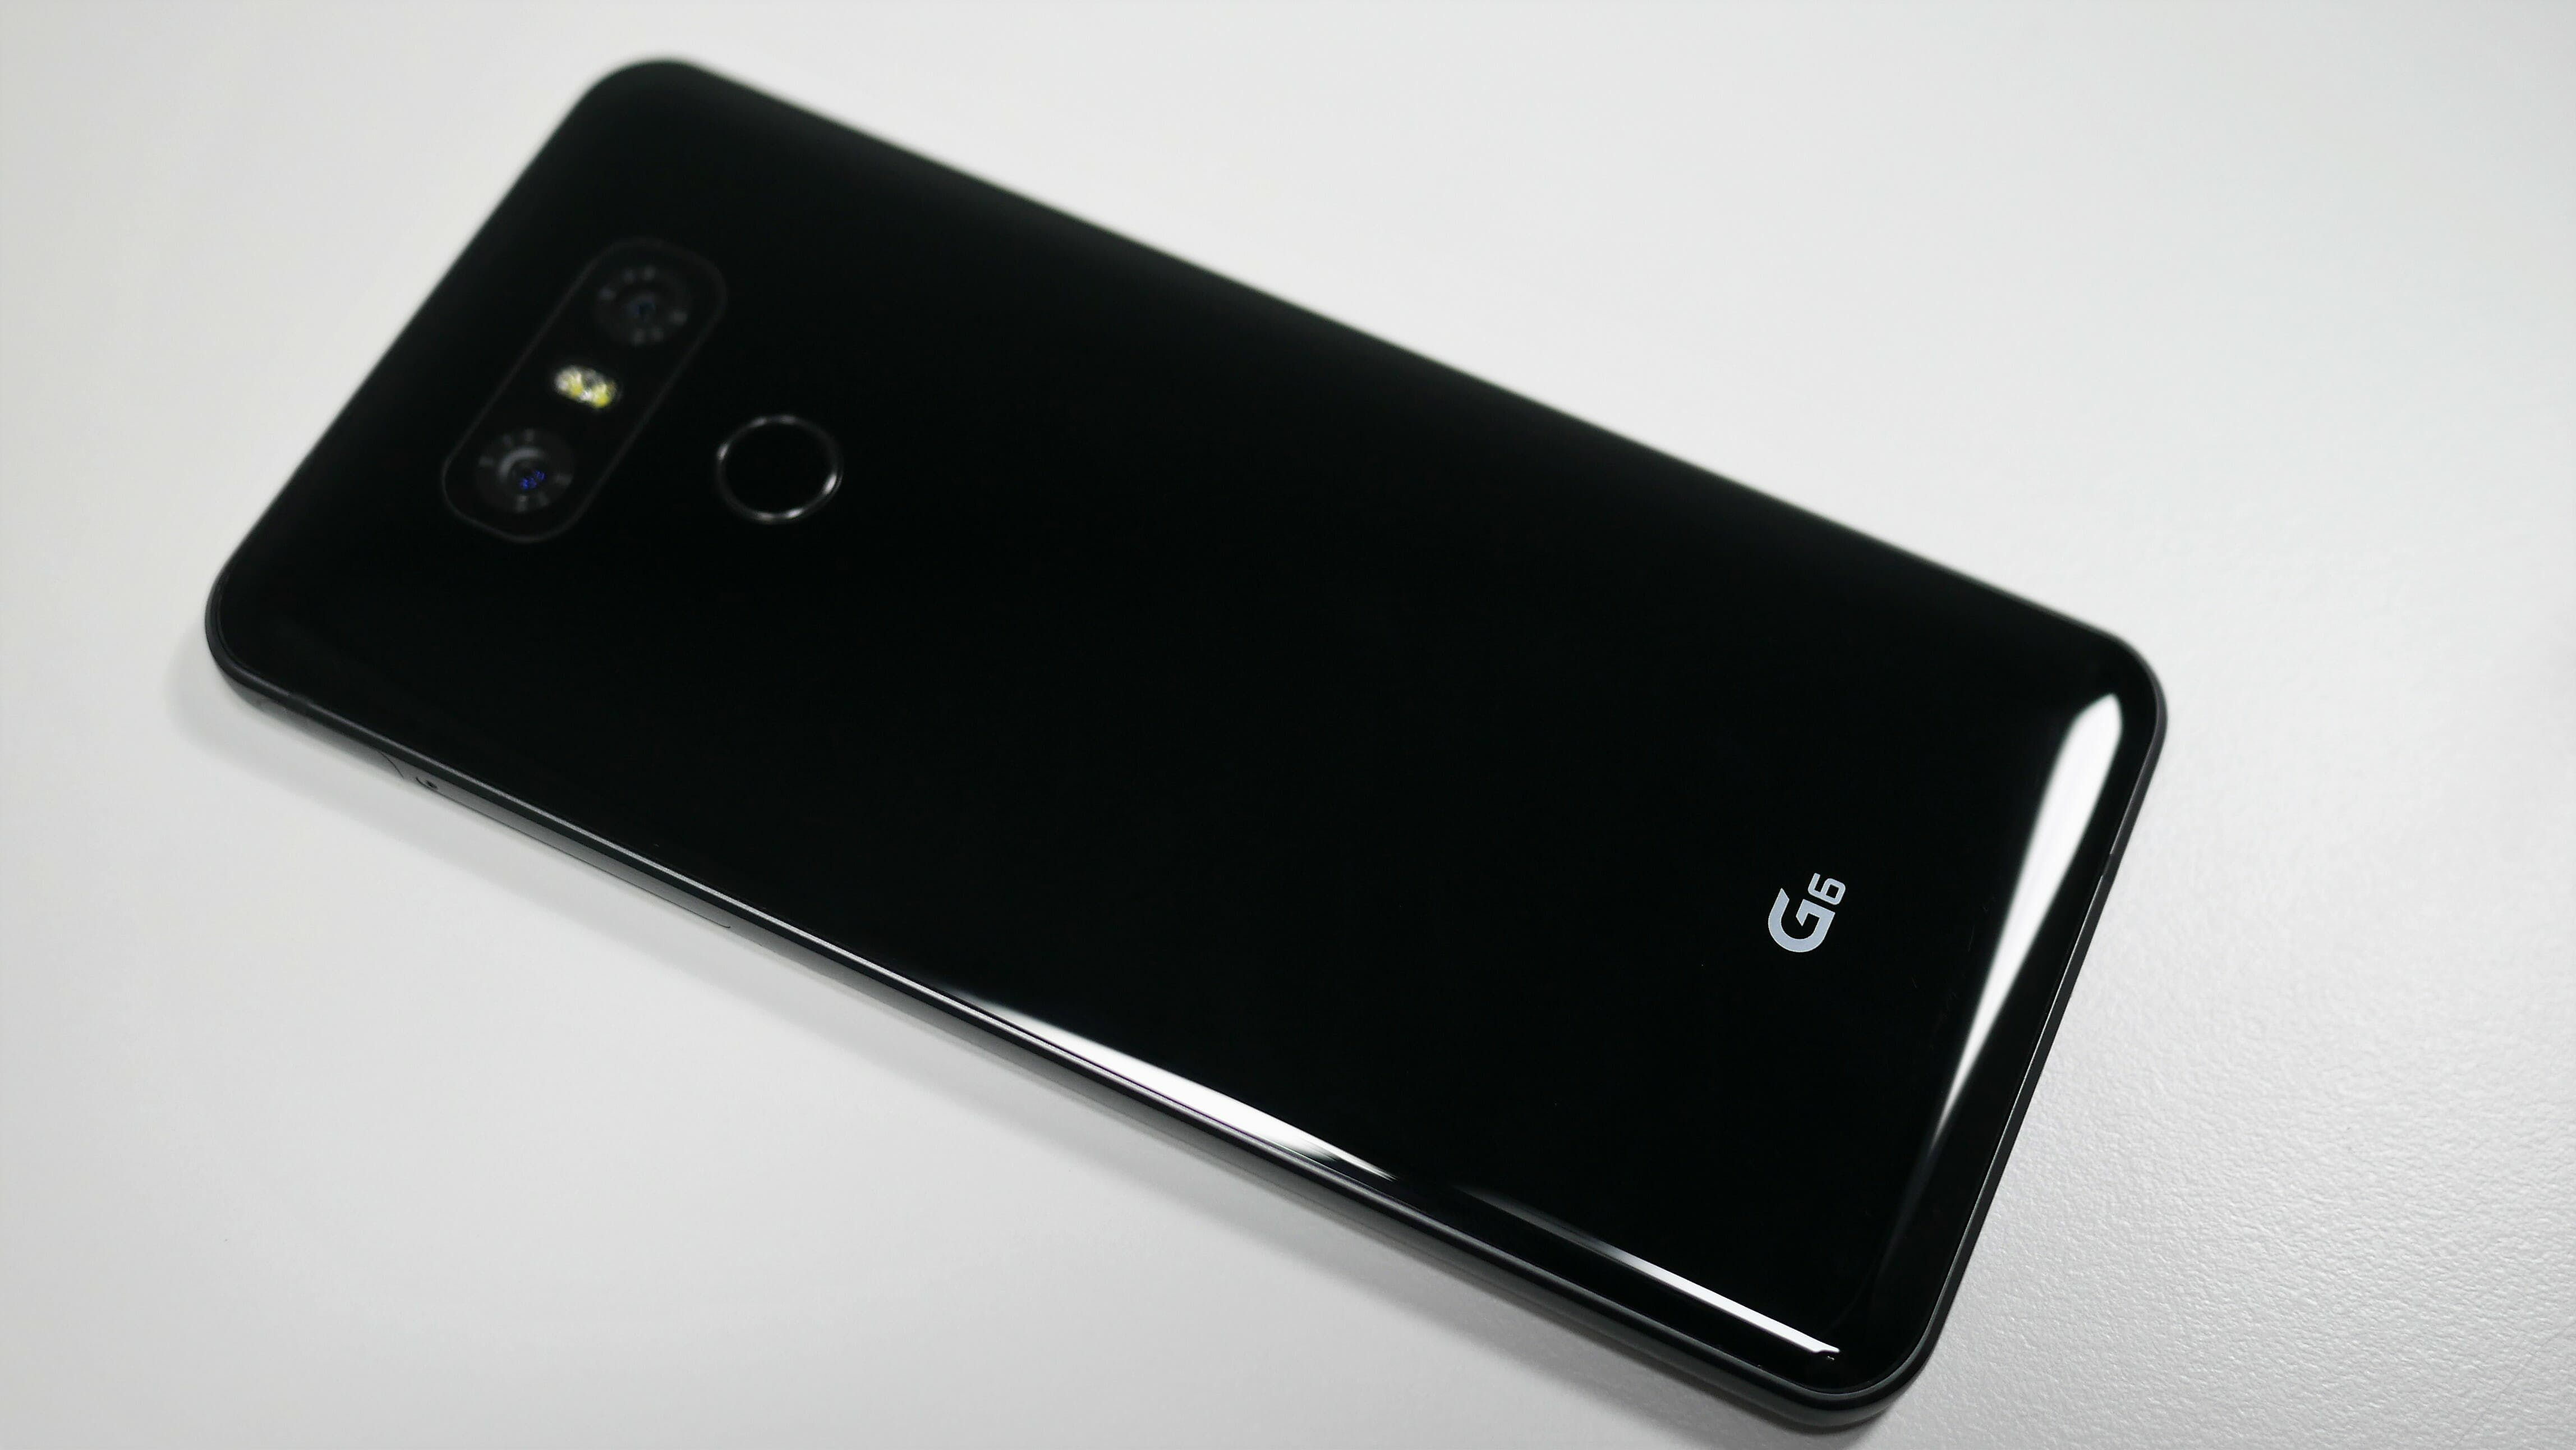 lg g6 rear black best cheap android phones